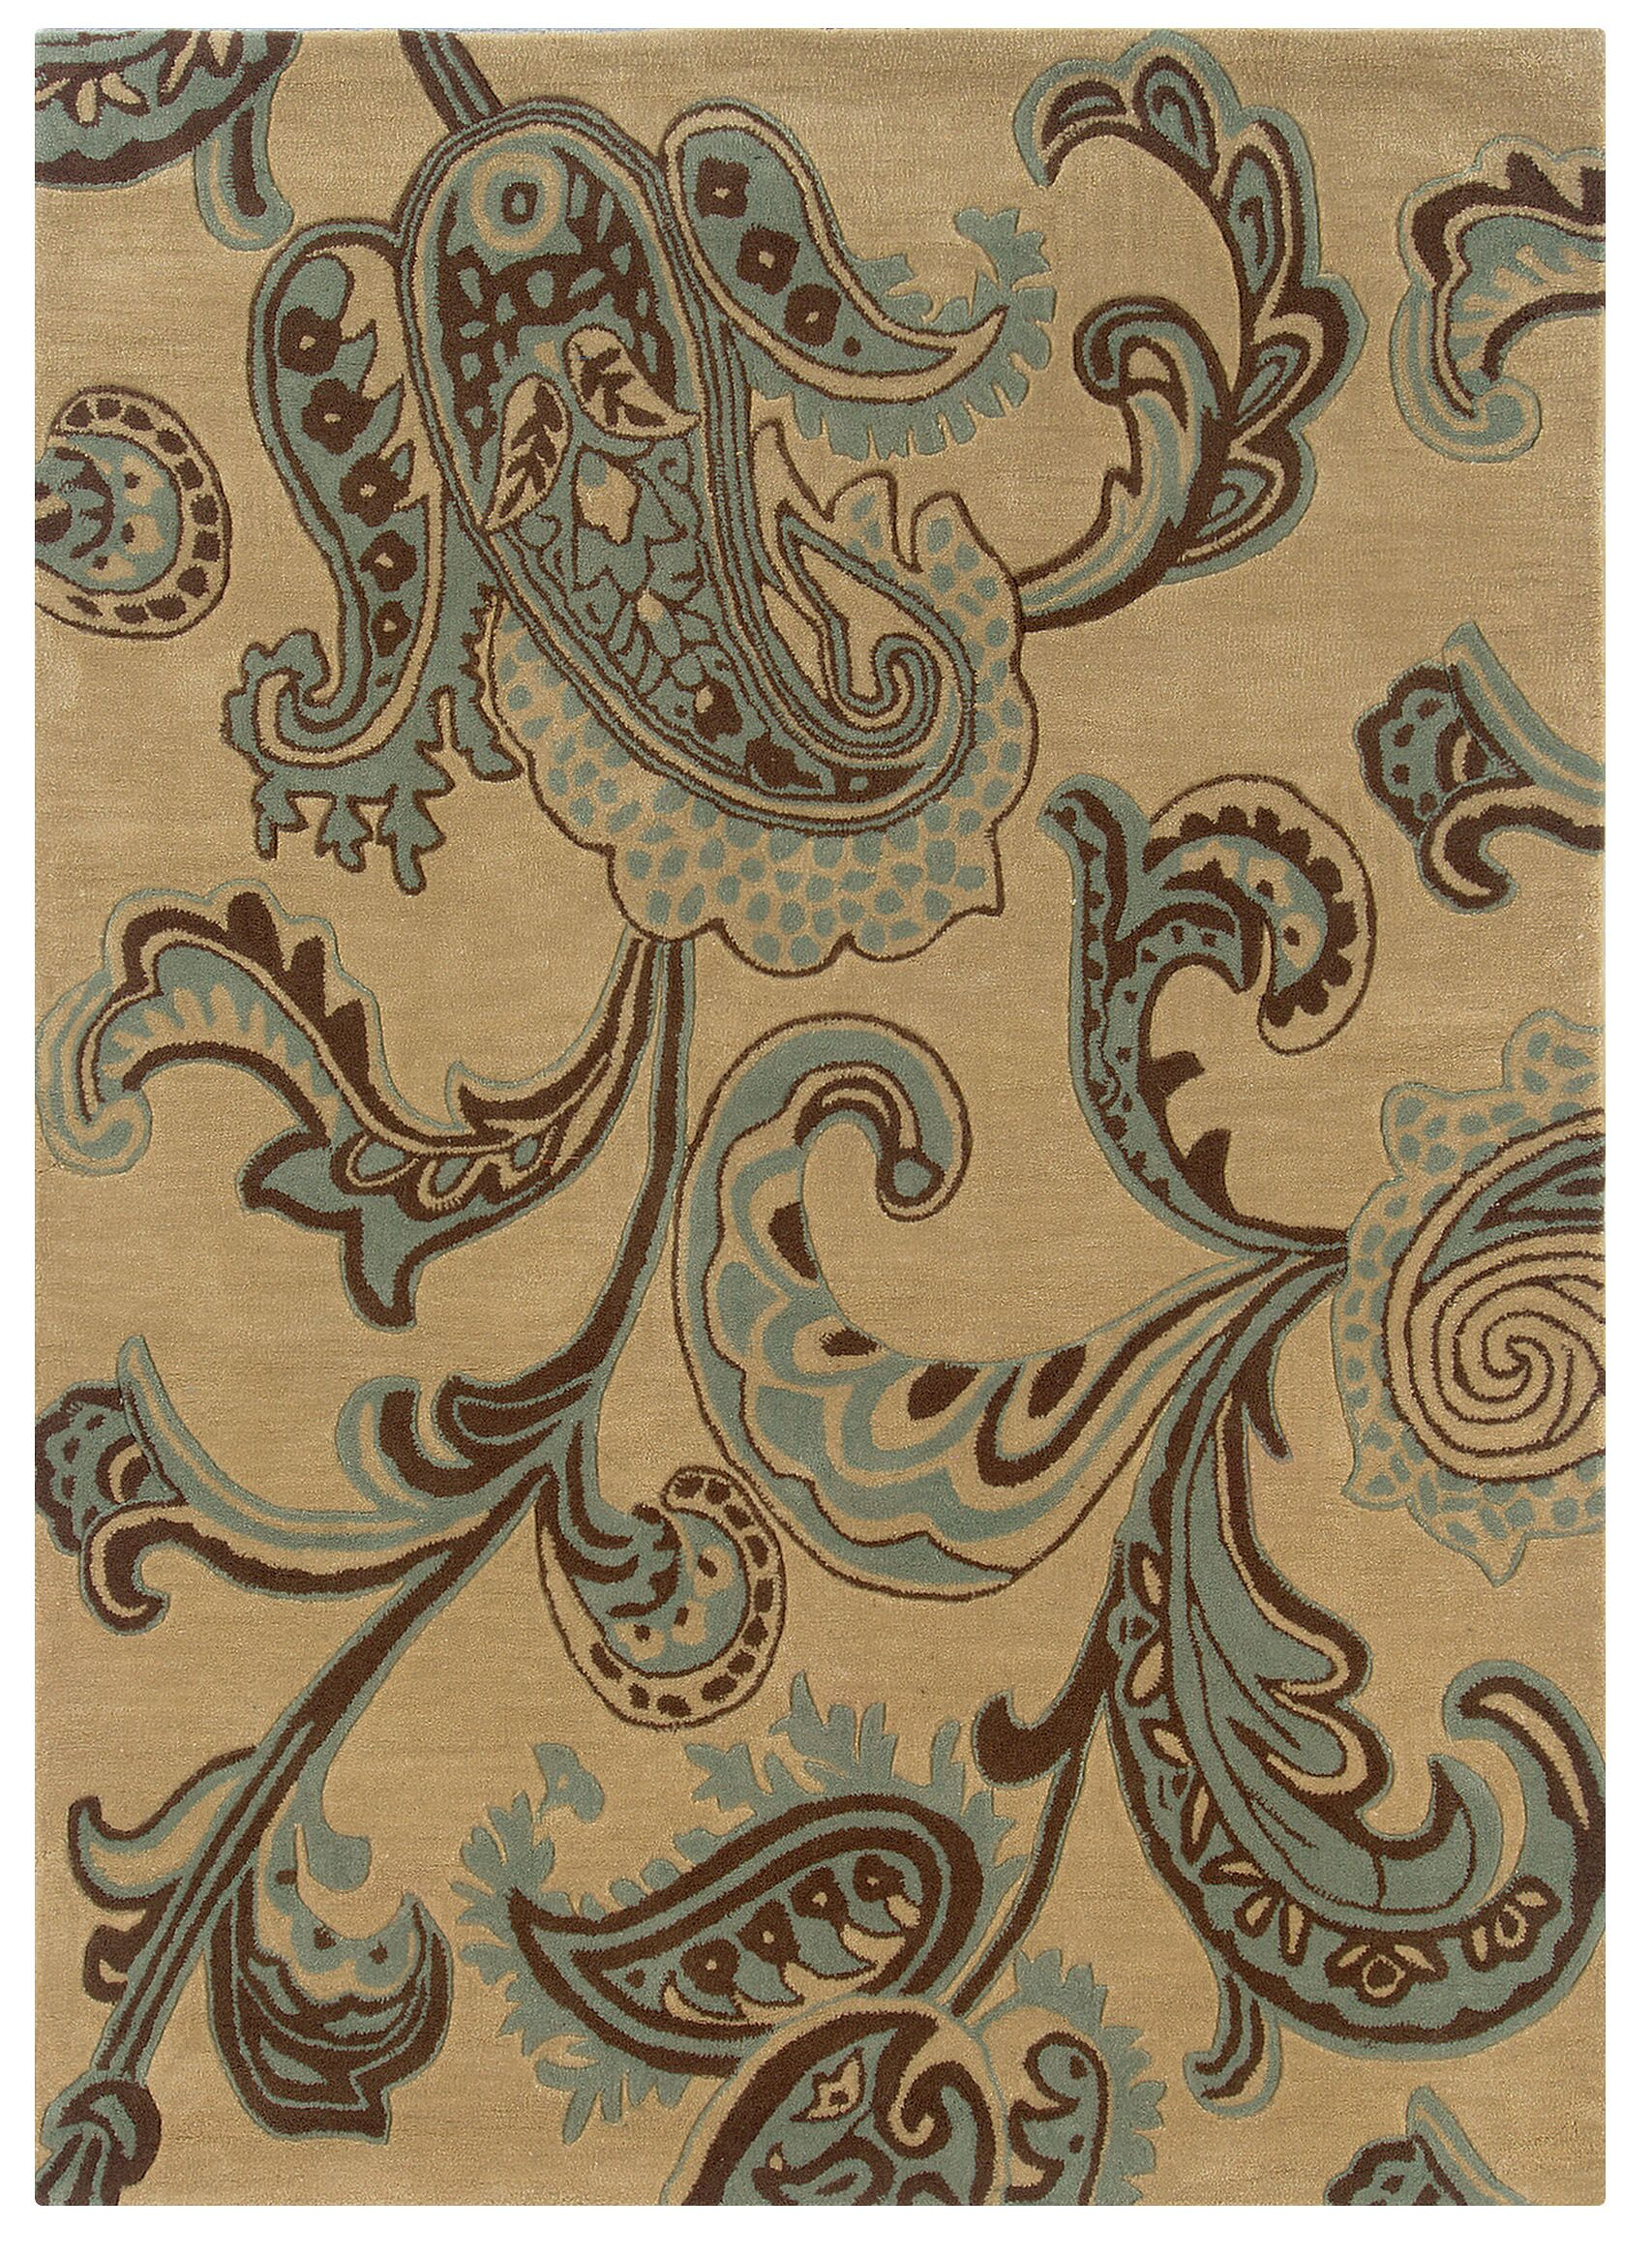 Columban Hand-Tufted Beige/Blue Area Rug Rug Size: Rectangle 8' x 10'